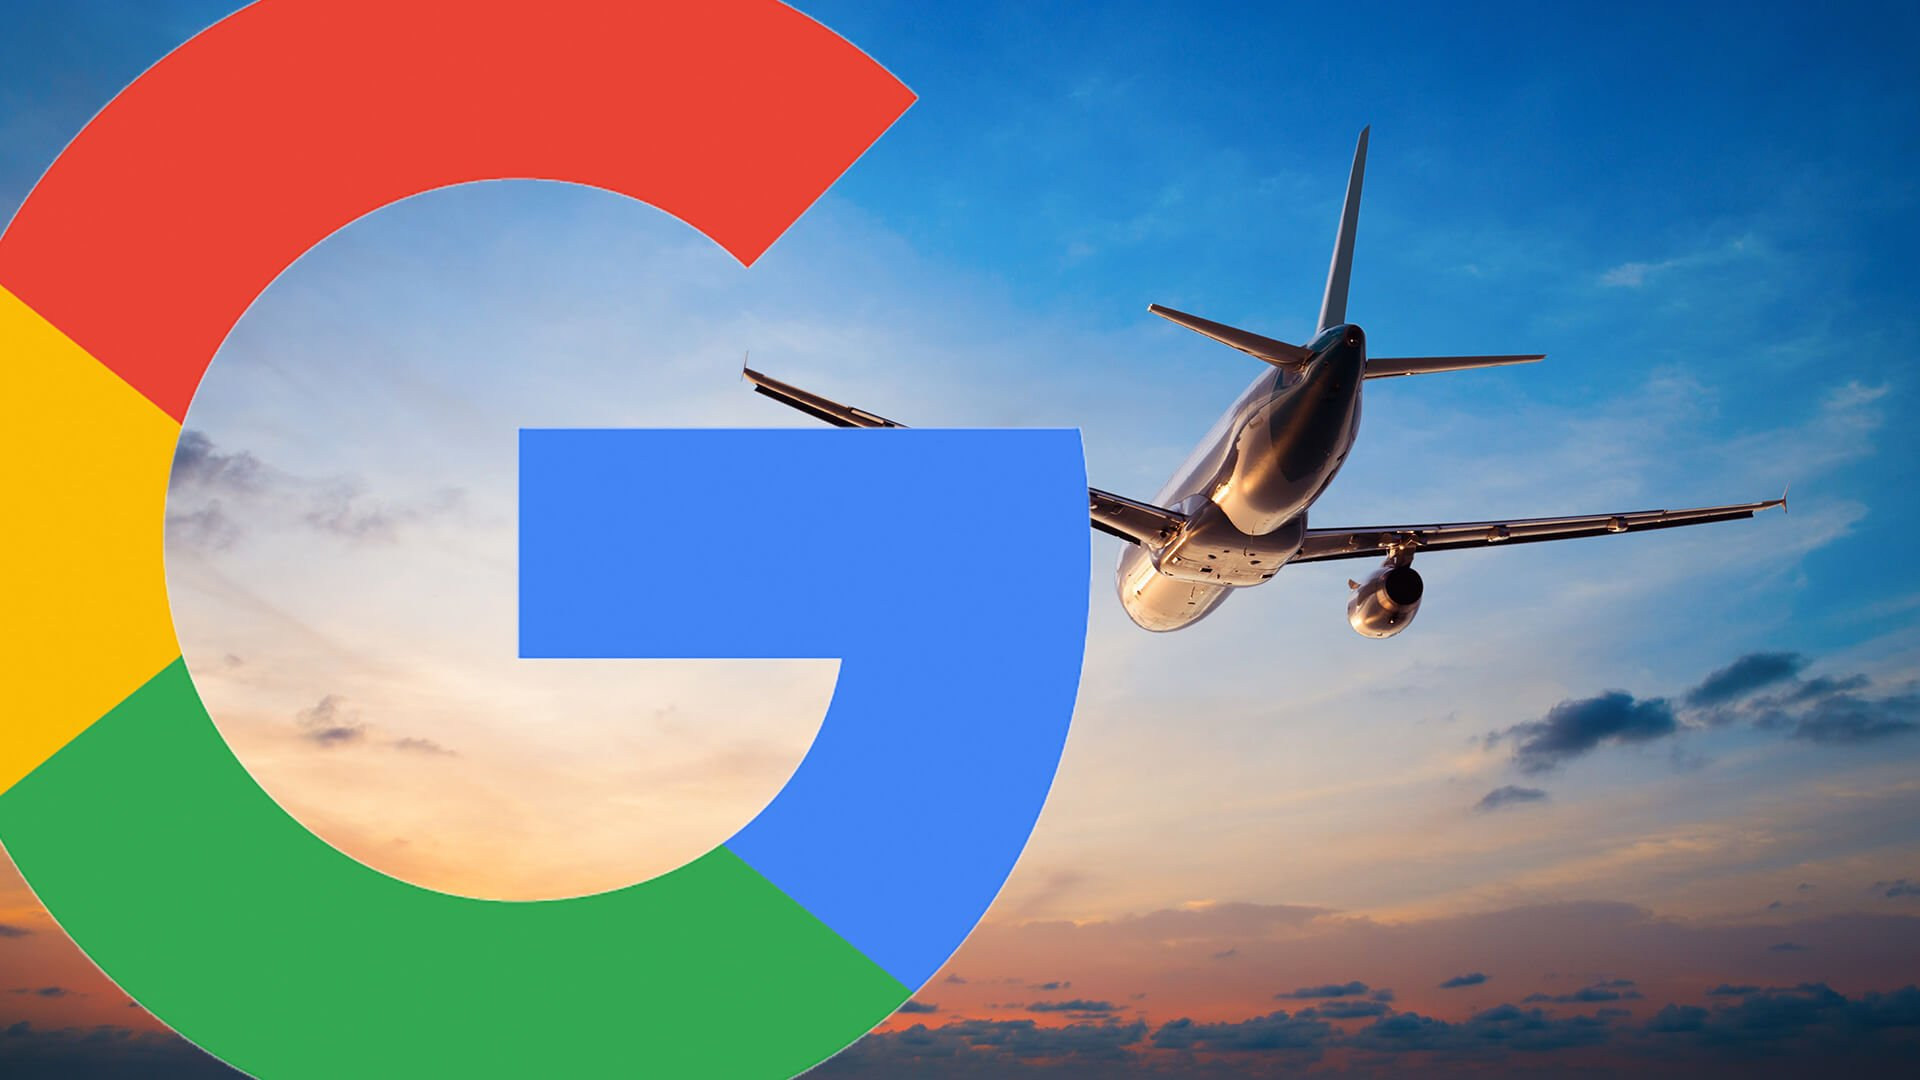 Google upgrades flight and hotel search to provide price grid views & more